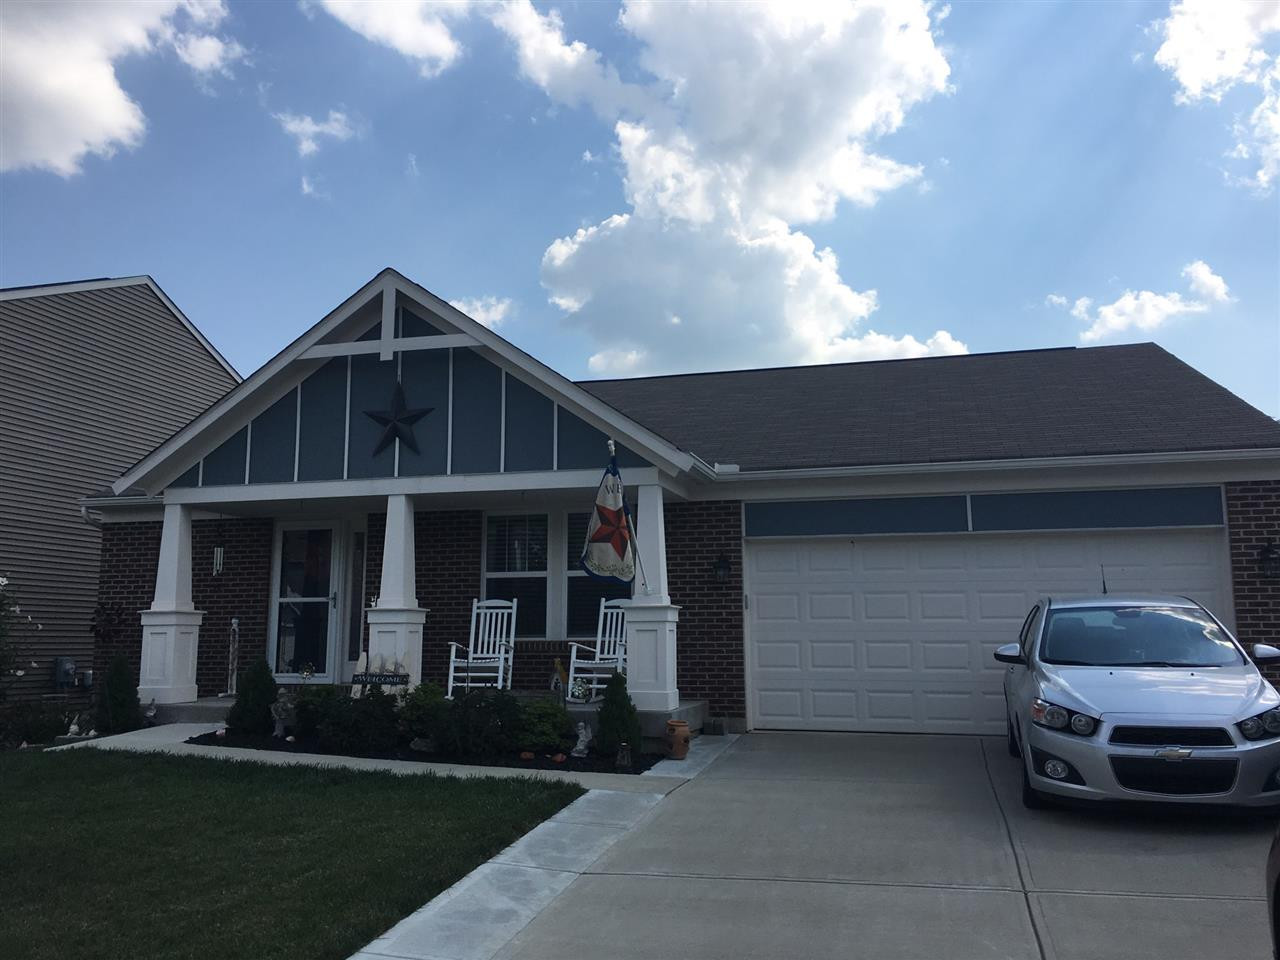 Photo 1 for 10176 CARDIGAN Dr Union, KY 41091